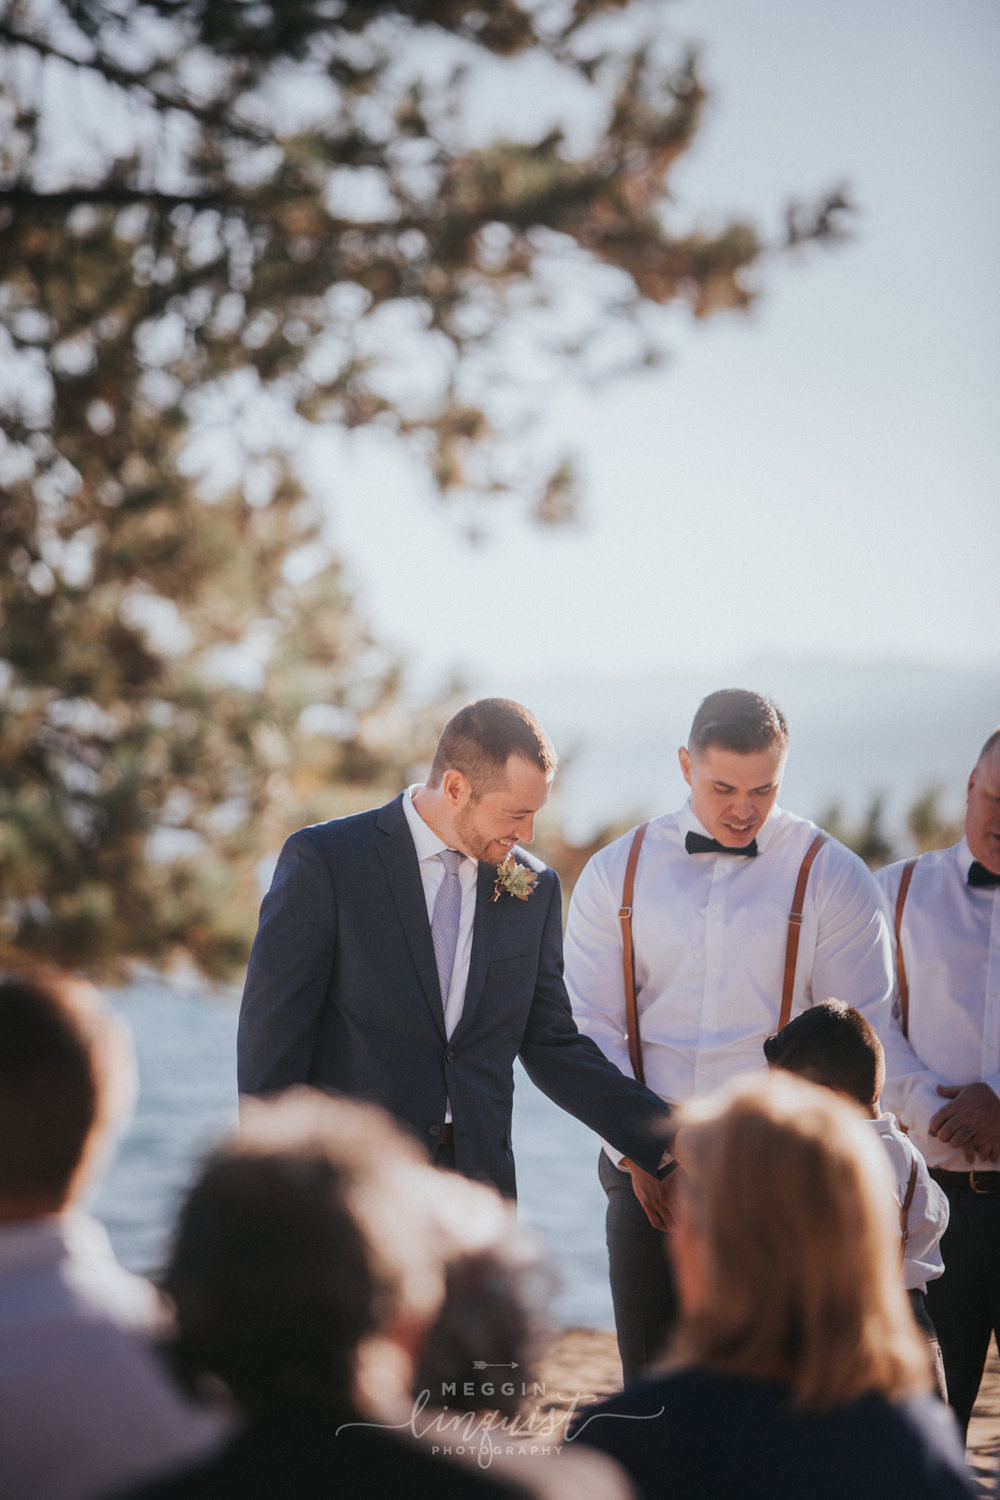 bohemian-style-lake-wedding-reno-lake-tahoe-wedding-photographer-11.jpg